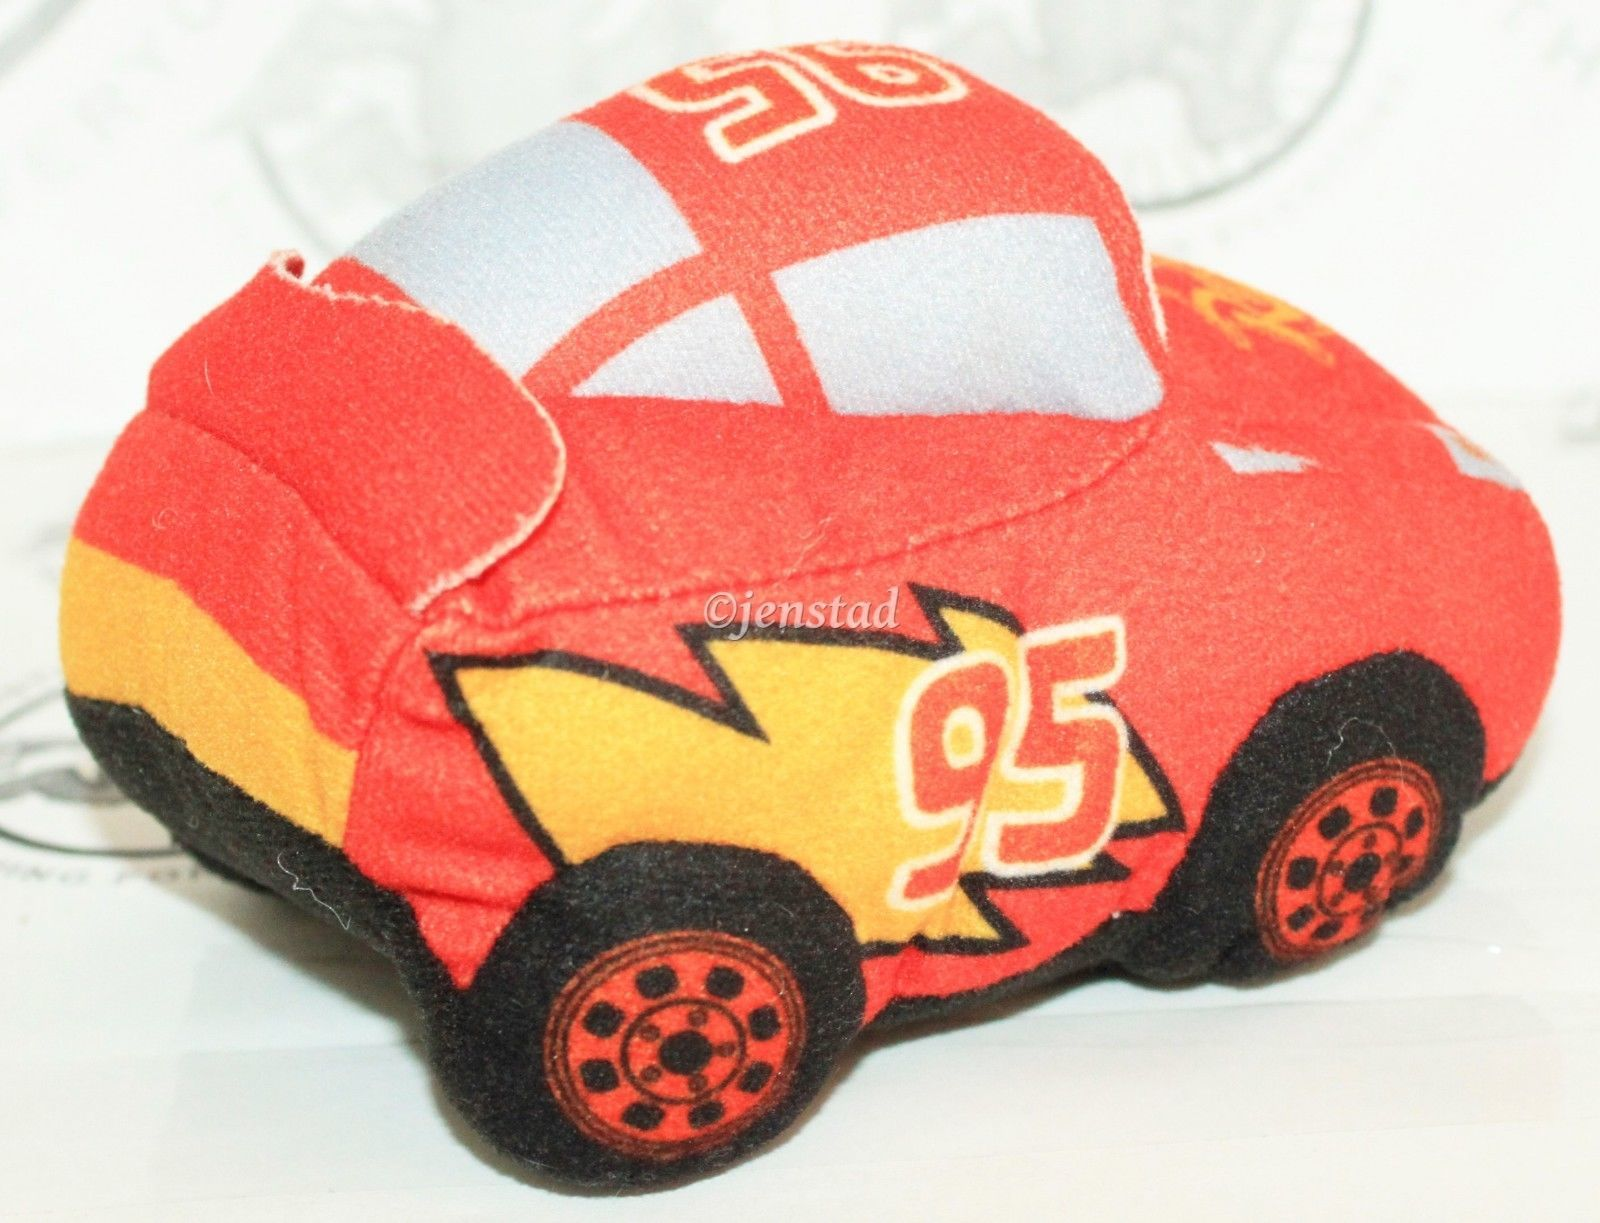 "CARS LIGHTNING MCQUEEN - SMALL PLUSH TOY FIGURE 5"" DISNEY PIXAR USED 2009"